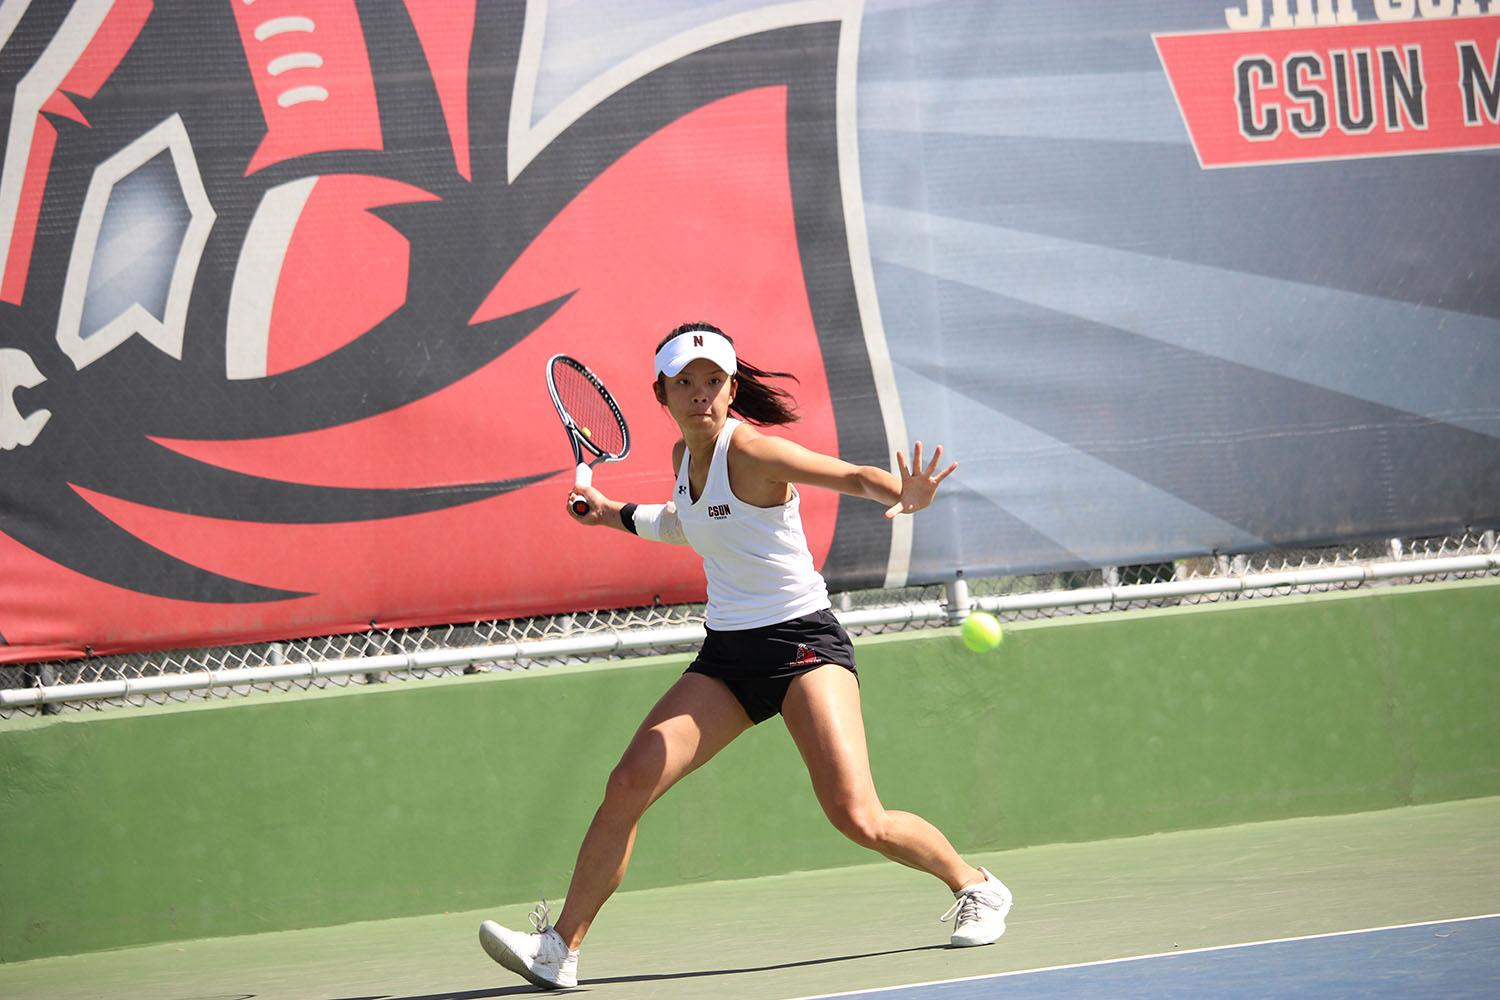 Women's tennis senior Mickey Hsu facing off against UCSB Junior Palina Dubavets in an unfinished match 3-6, 6-4, 0-3 April 2, 2017 at CSUN.